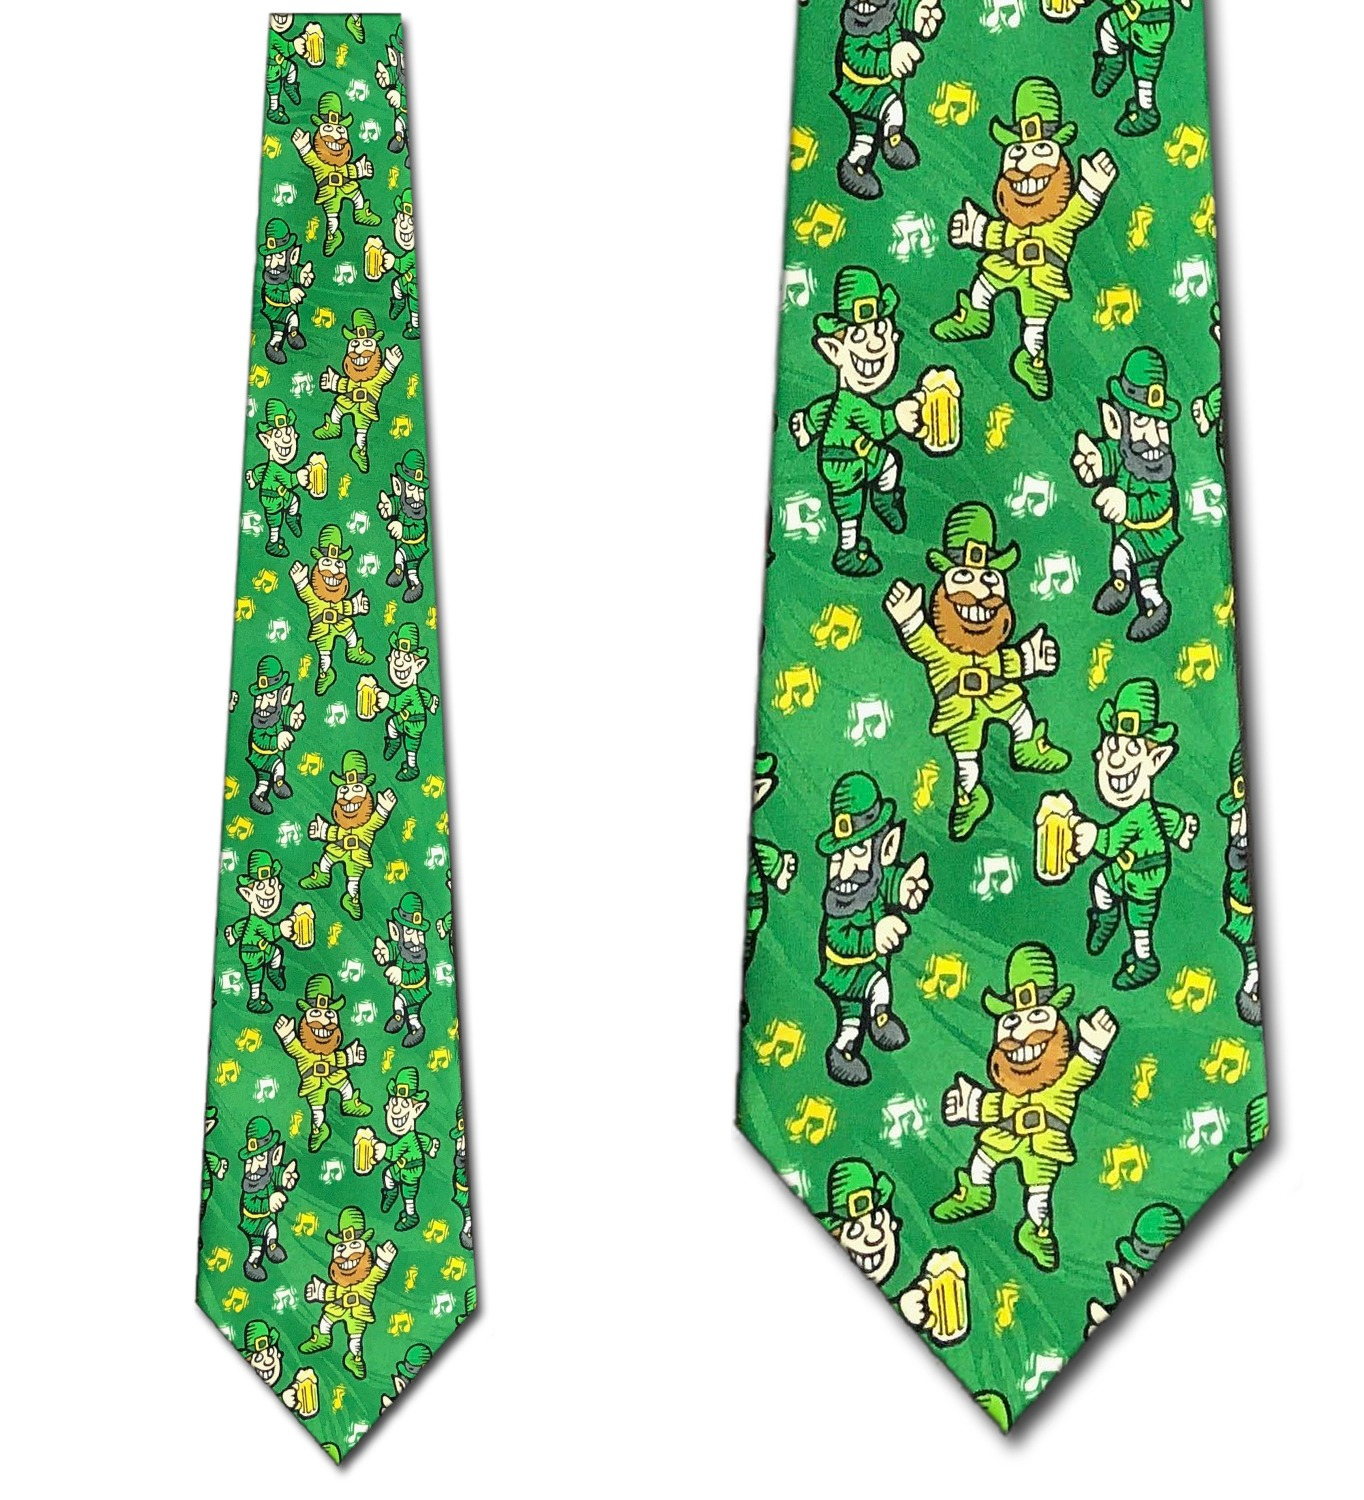 Leprechaun beer and music Necktie Mens Tie by Tieg